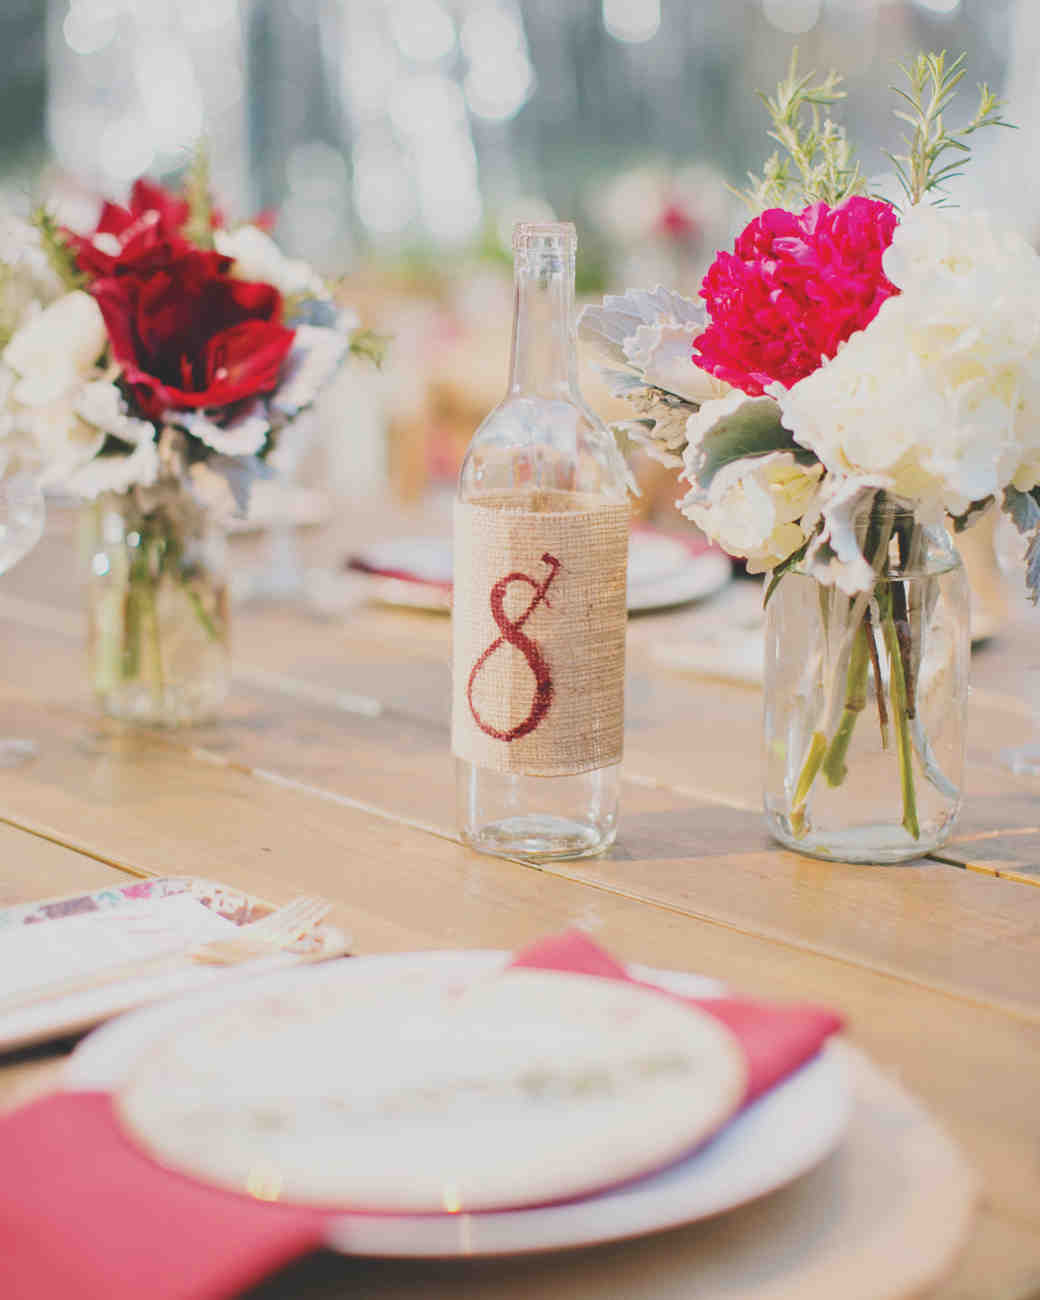 wedding table number ideas that scored at real celebrations martha stewart weddings